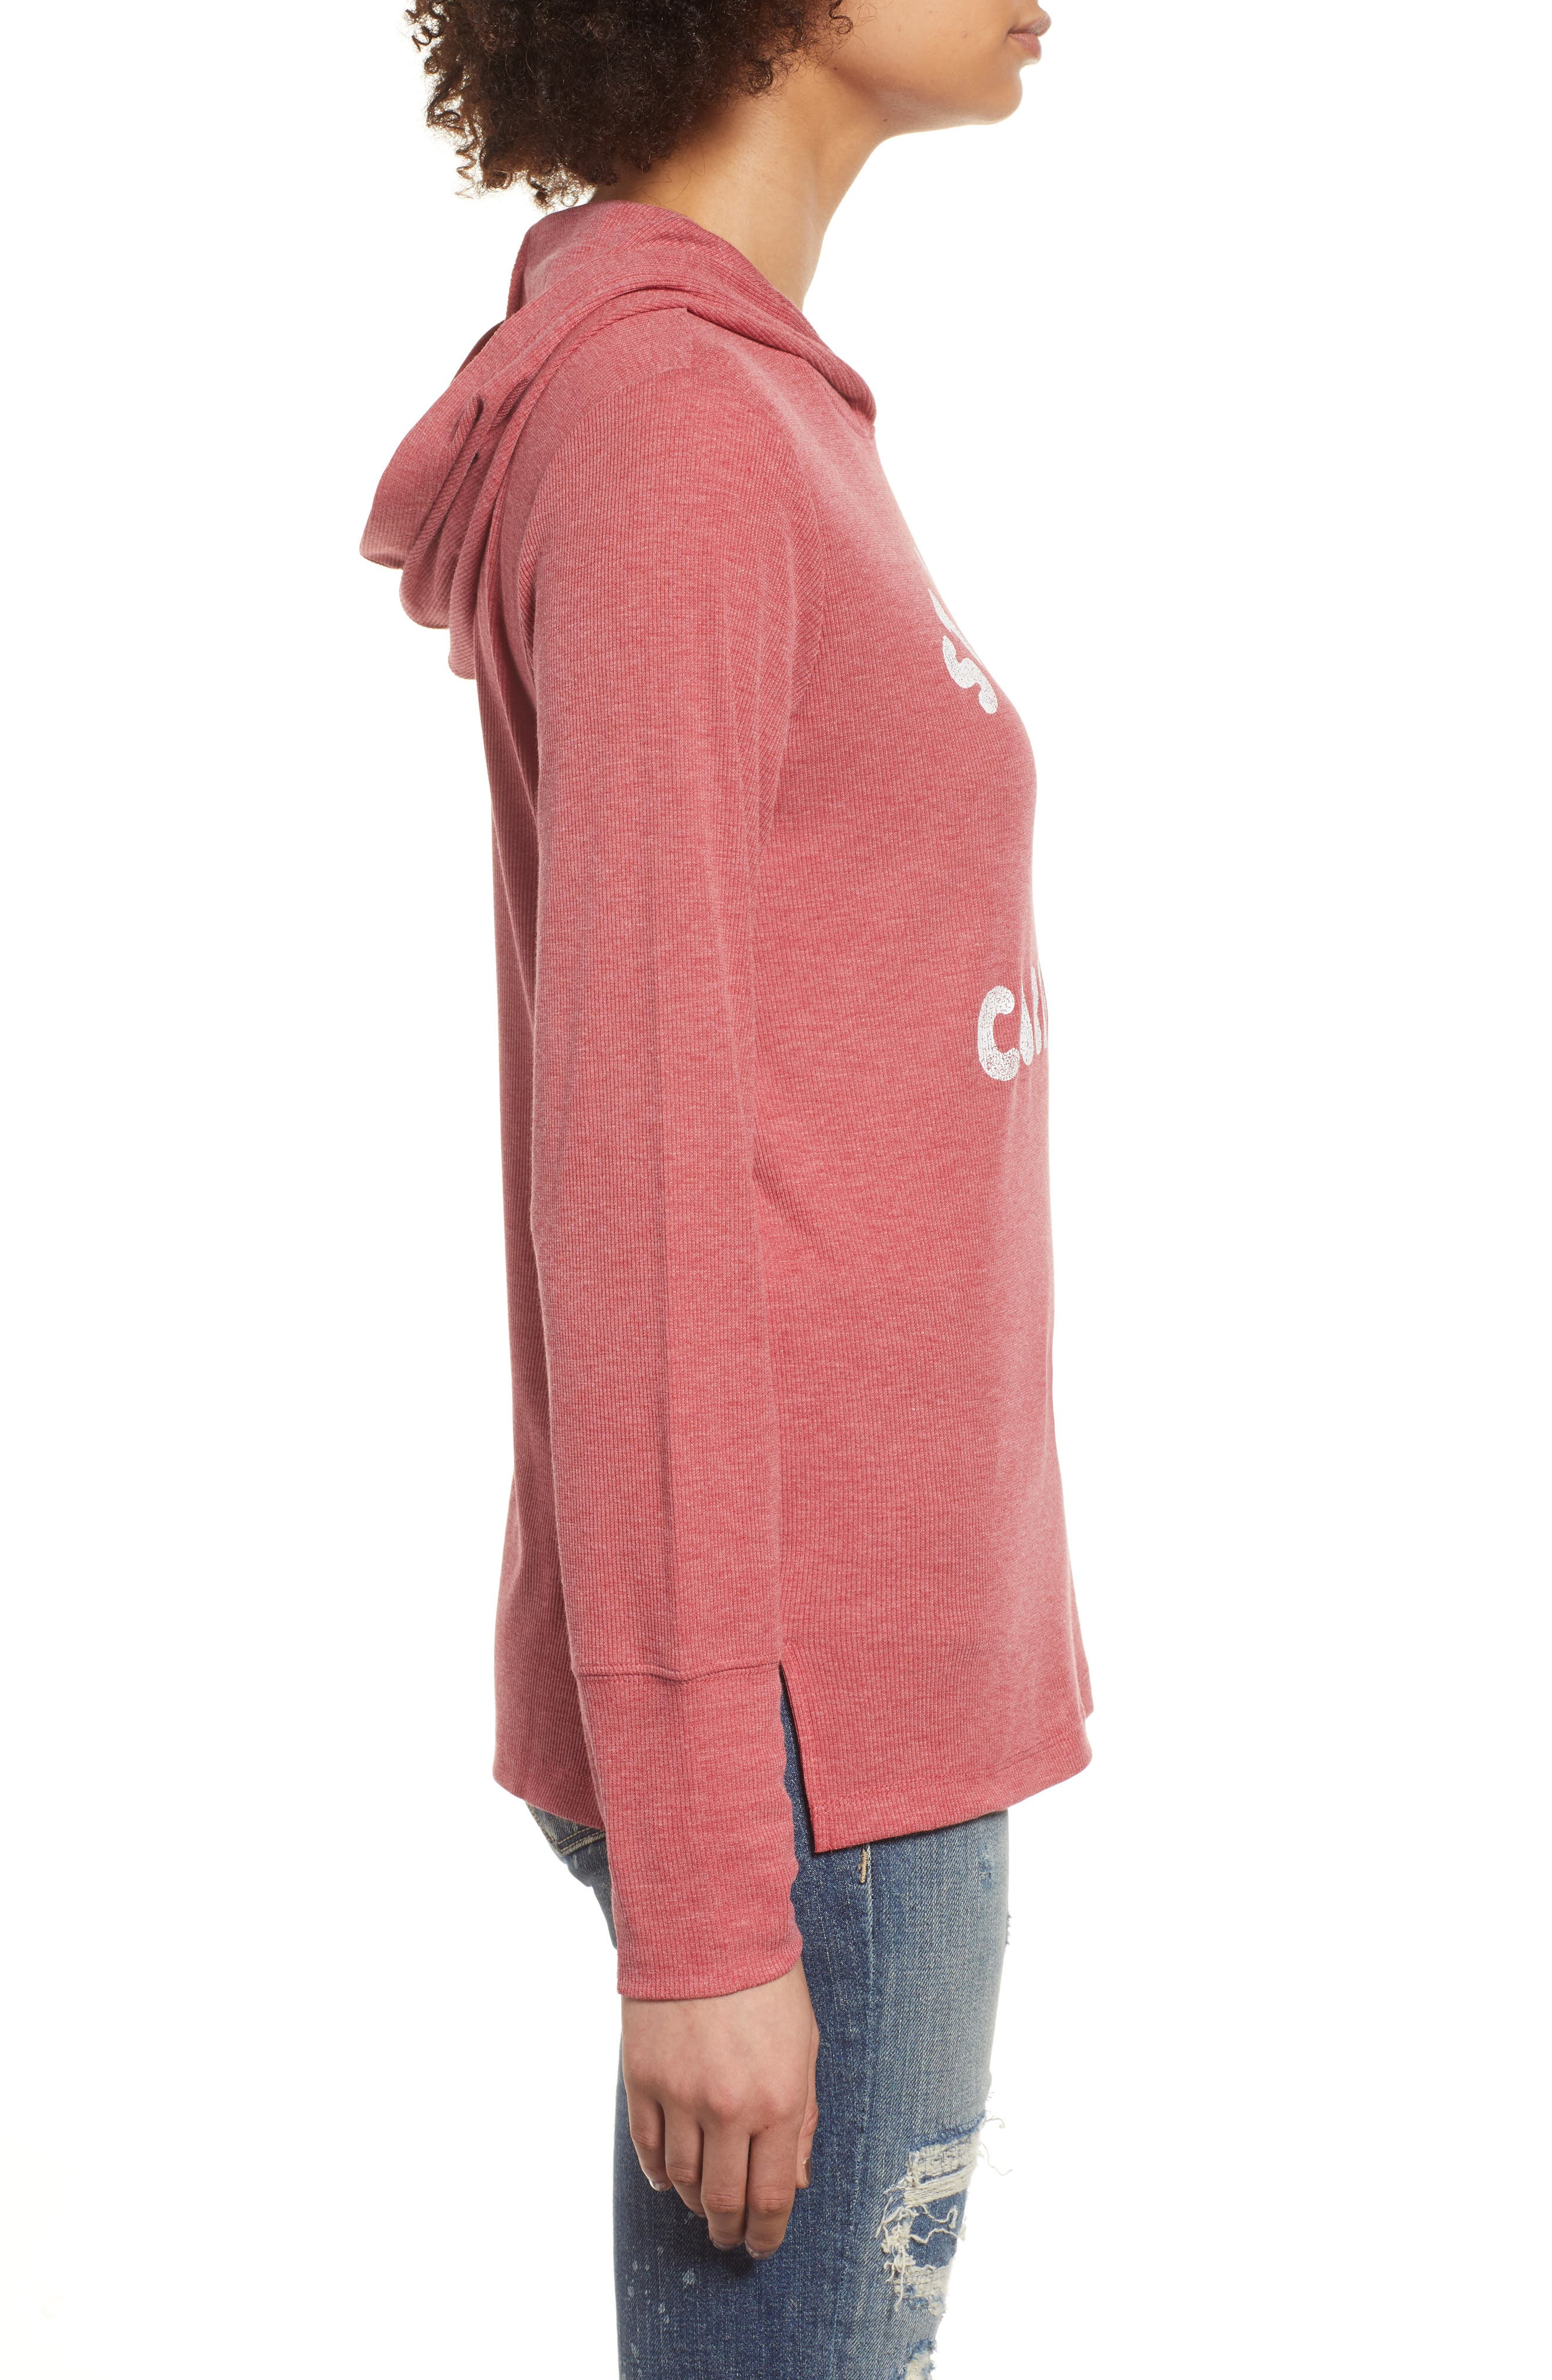 Campbell St. Louis Cardinals Rib Knit Hooded Top,                             Alternate thumbnail 3, color,                             Rescue Red